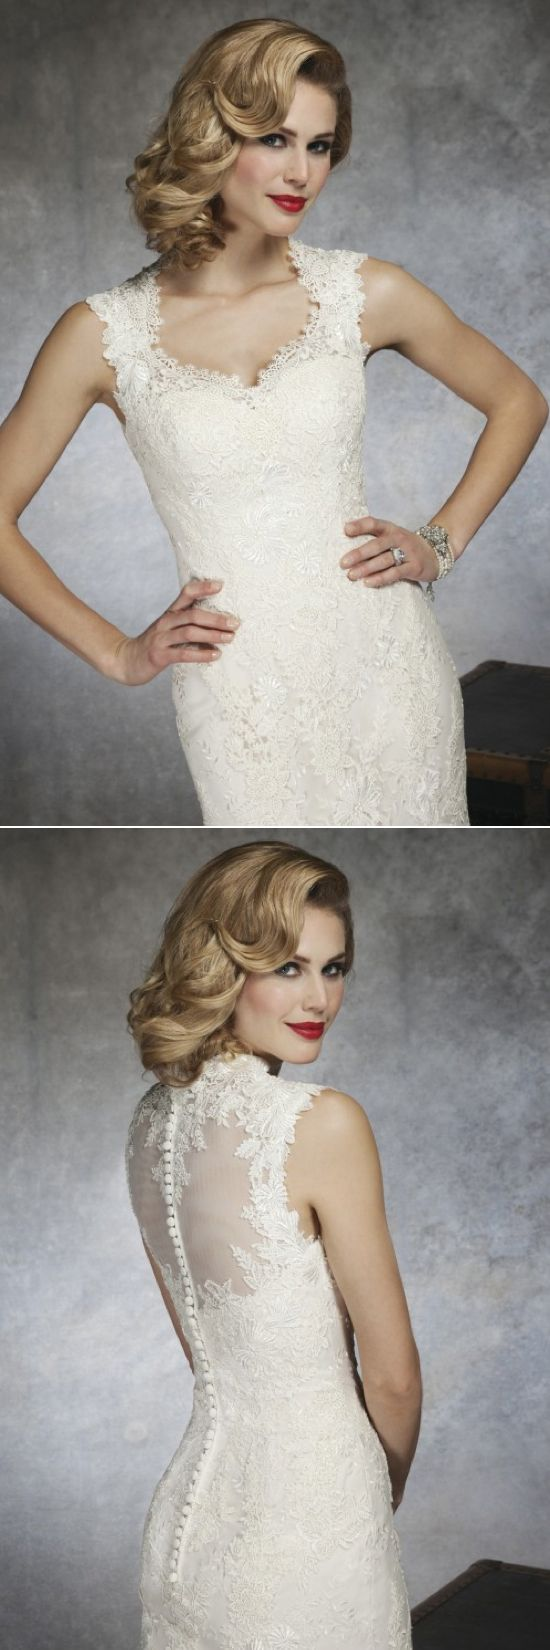 Justin Alexander Spring 2013 — Wedding Ideas, Wedding Trends, and Wedding Galleries